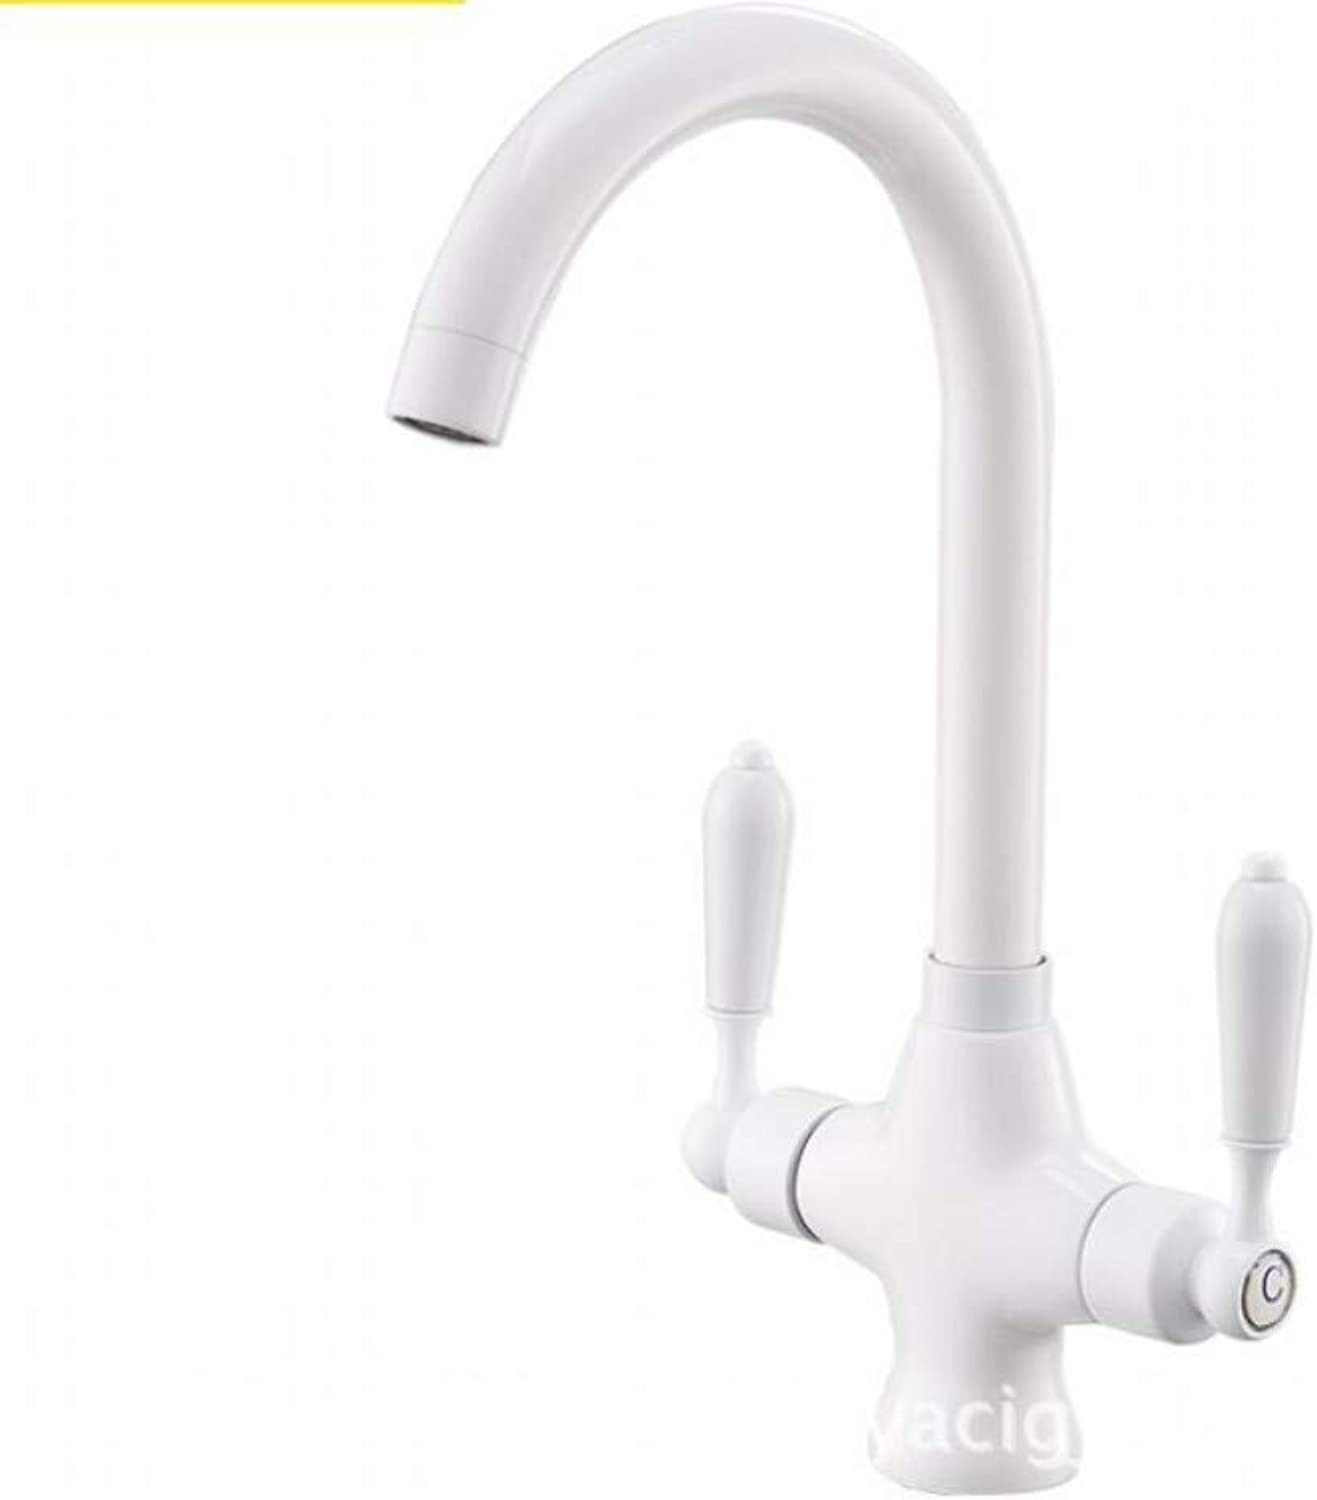 Bathroom Sink Basin Lever Mixer Tap Double Double Control Single Hole Kitchen Faucet Sink Hot and Cold Faucet